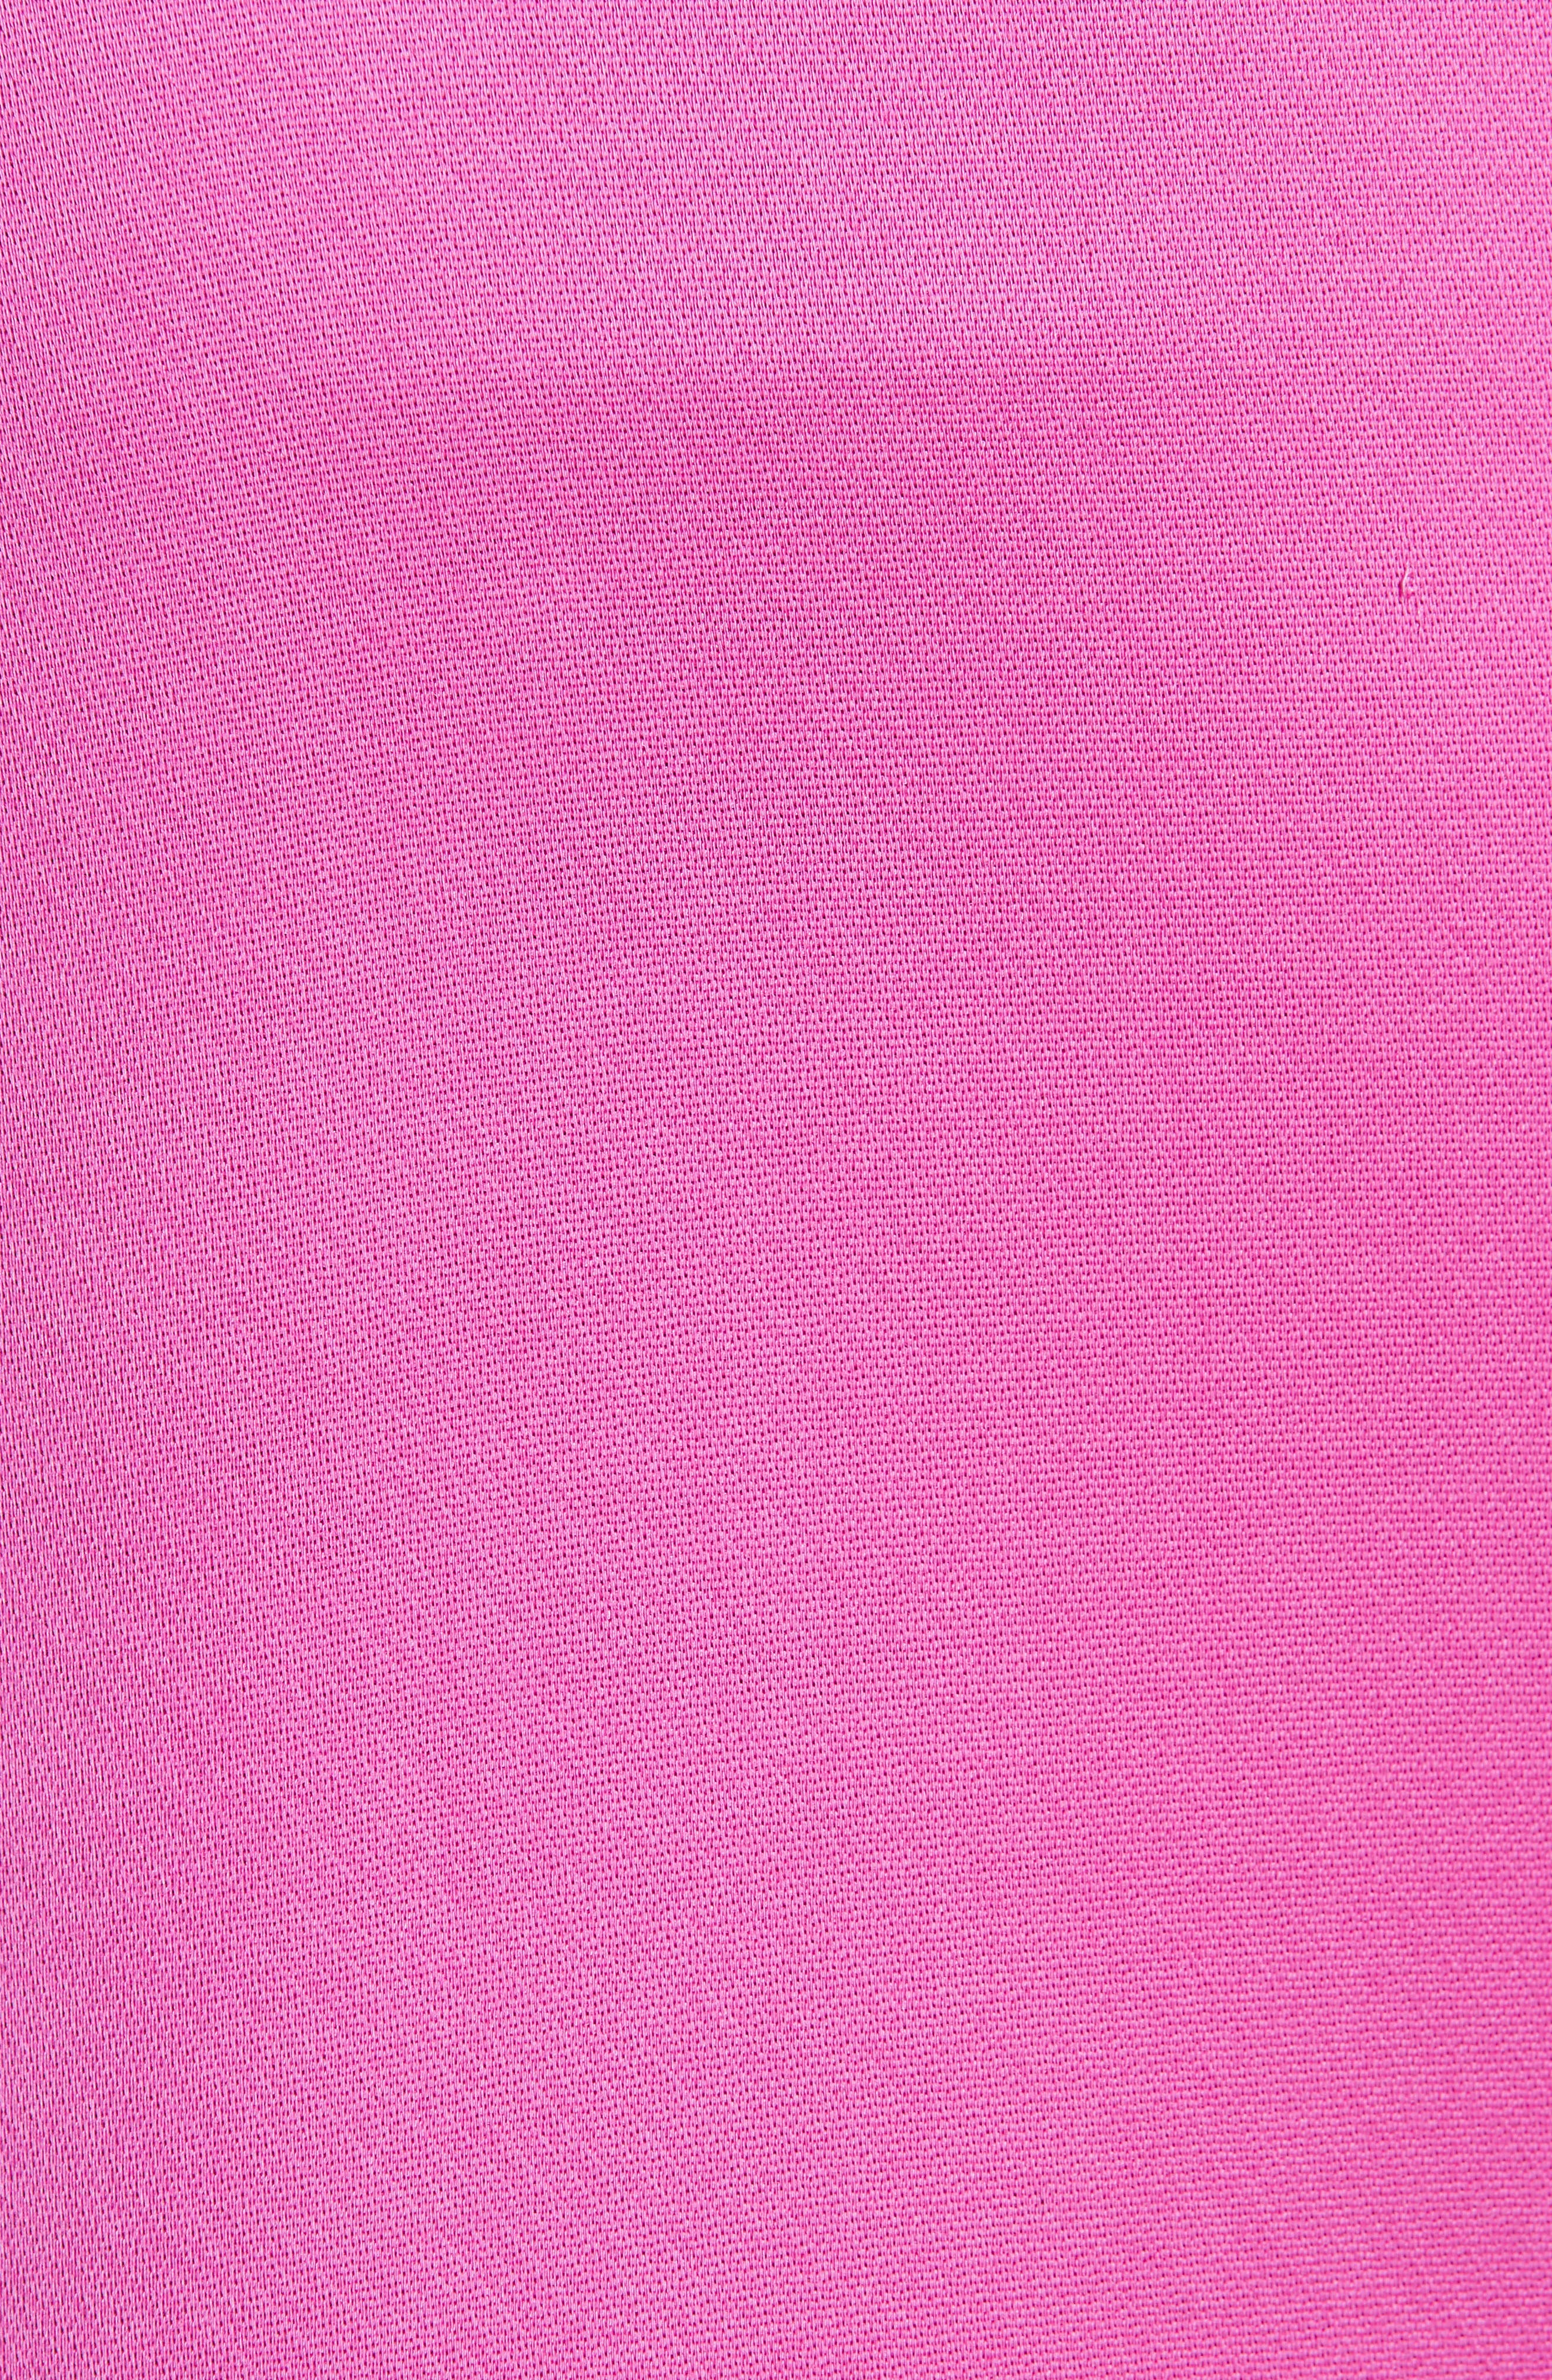 High Waist Satin Twill Pants,                             Alternate thumbnail 5, color,                             HOT PINK